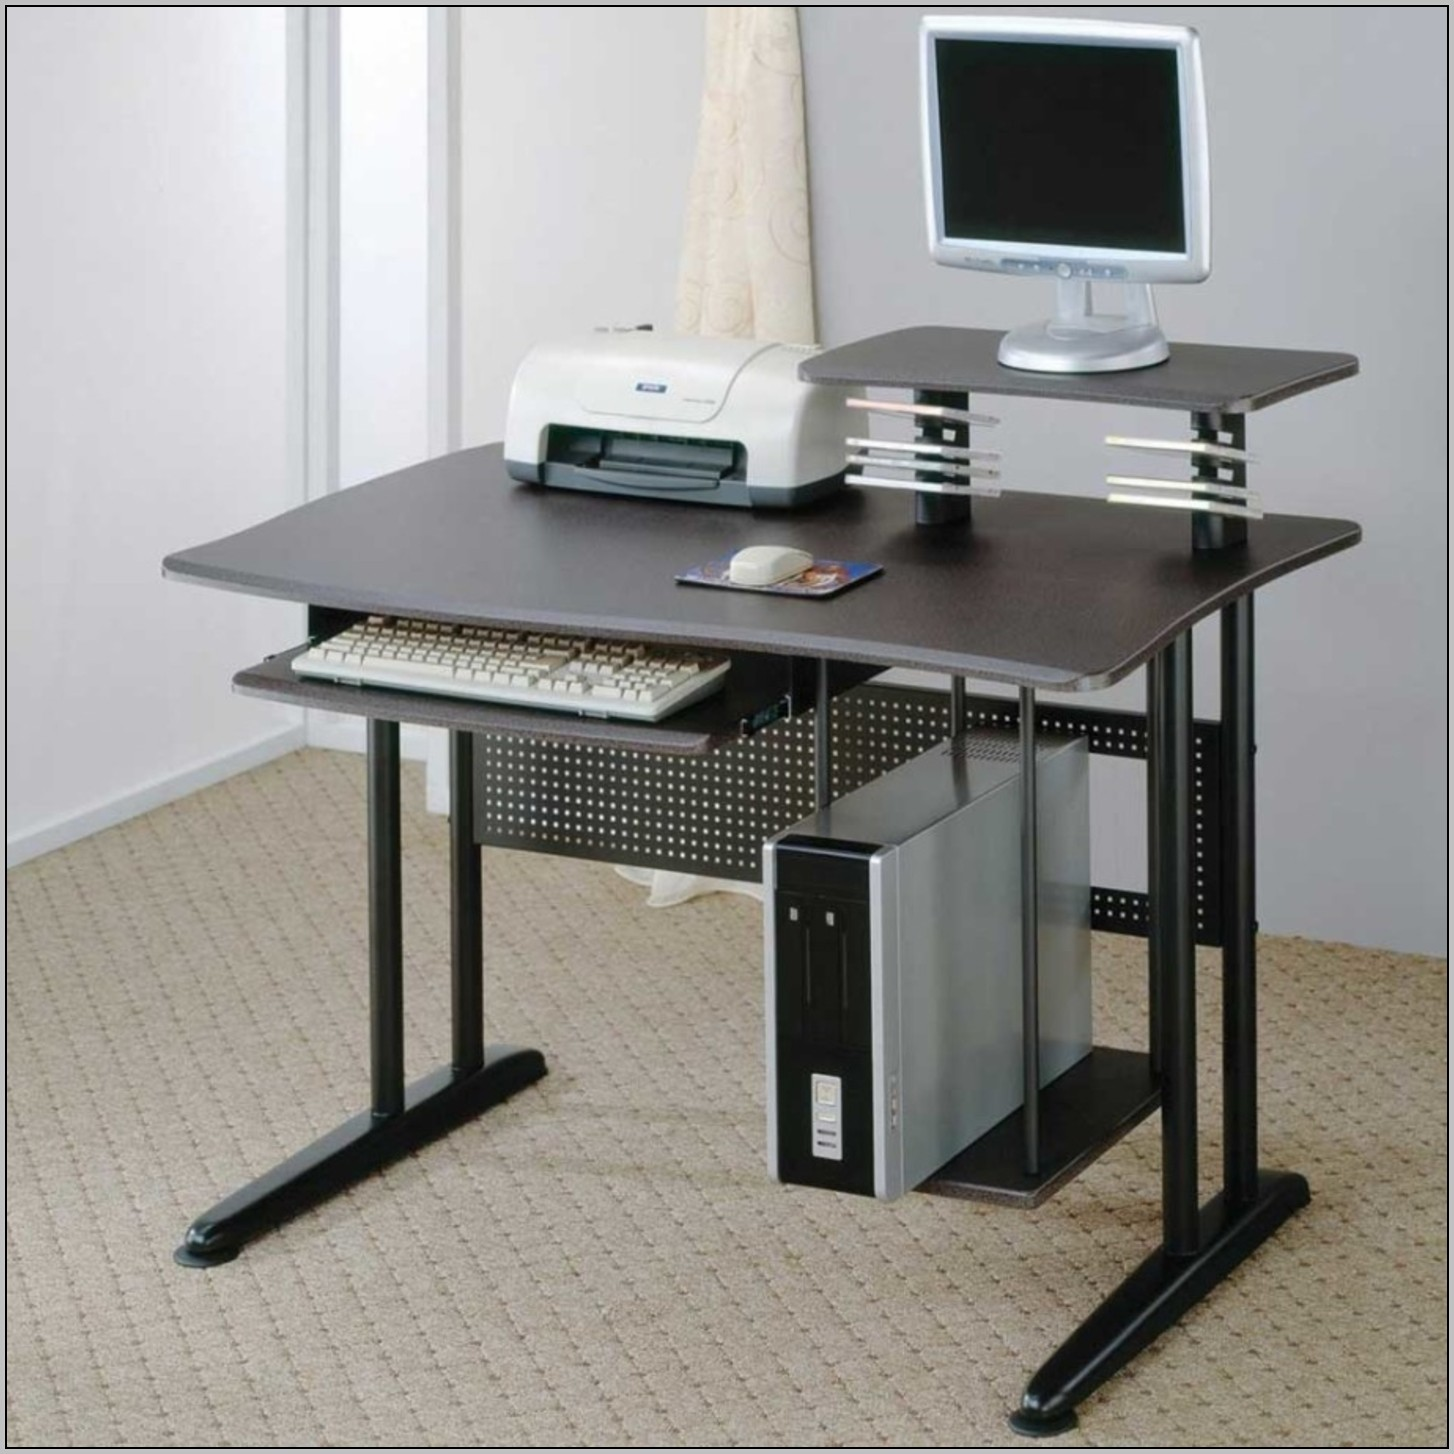 Wood computer desks for small spaces download page home design ideas galleries home design - Small wooden computer desks for small spaces concept ...